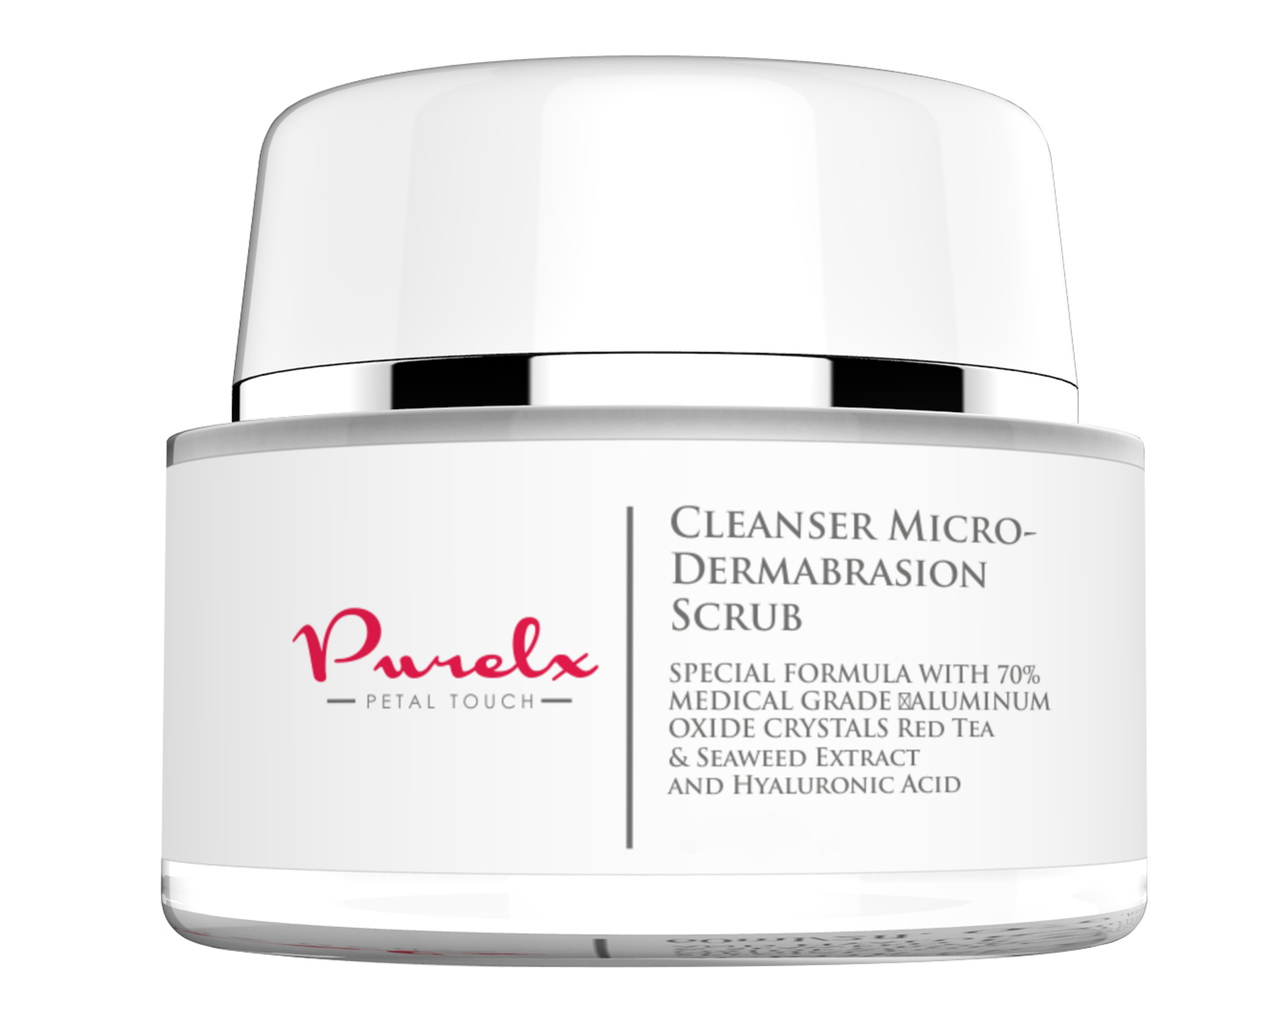 PURELX PERFECTION CLEANSER MICRO-DERMABRASION SCRUB